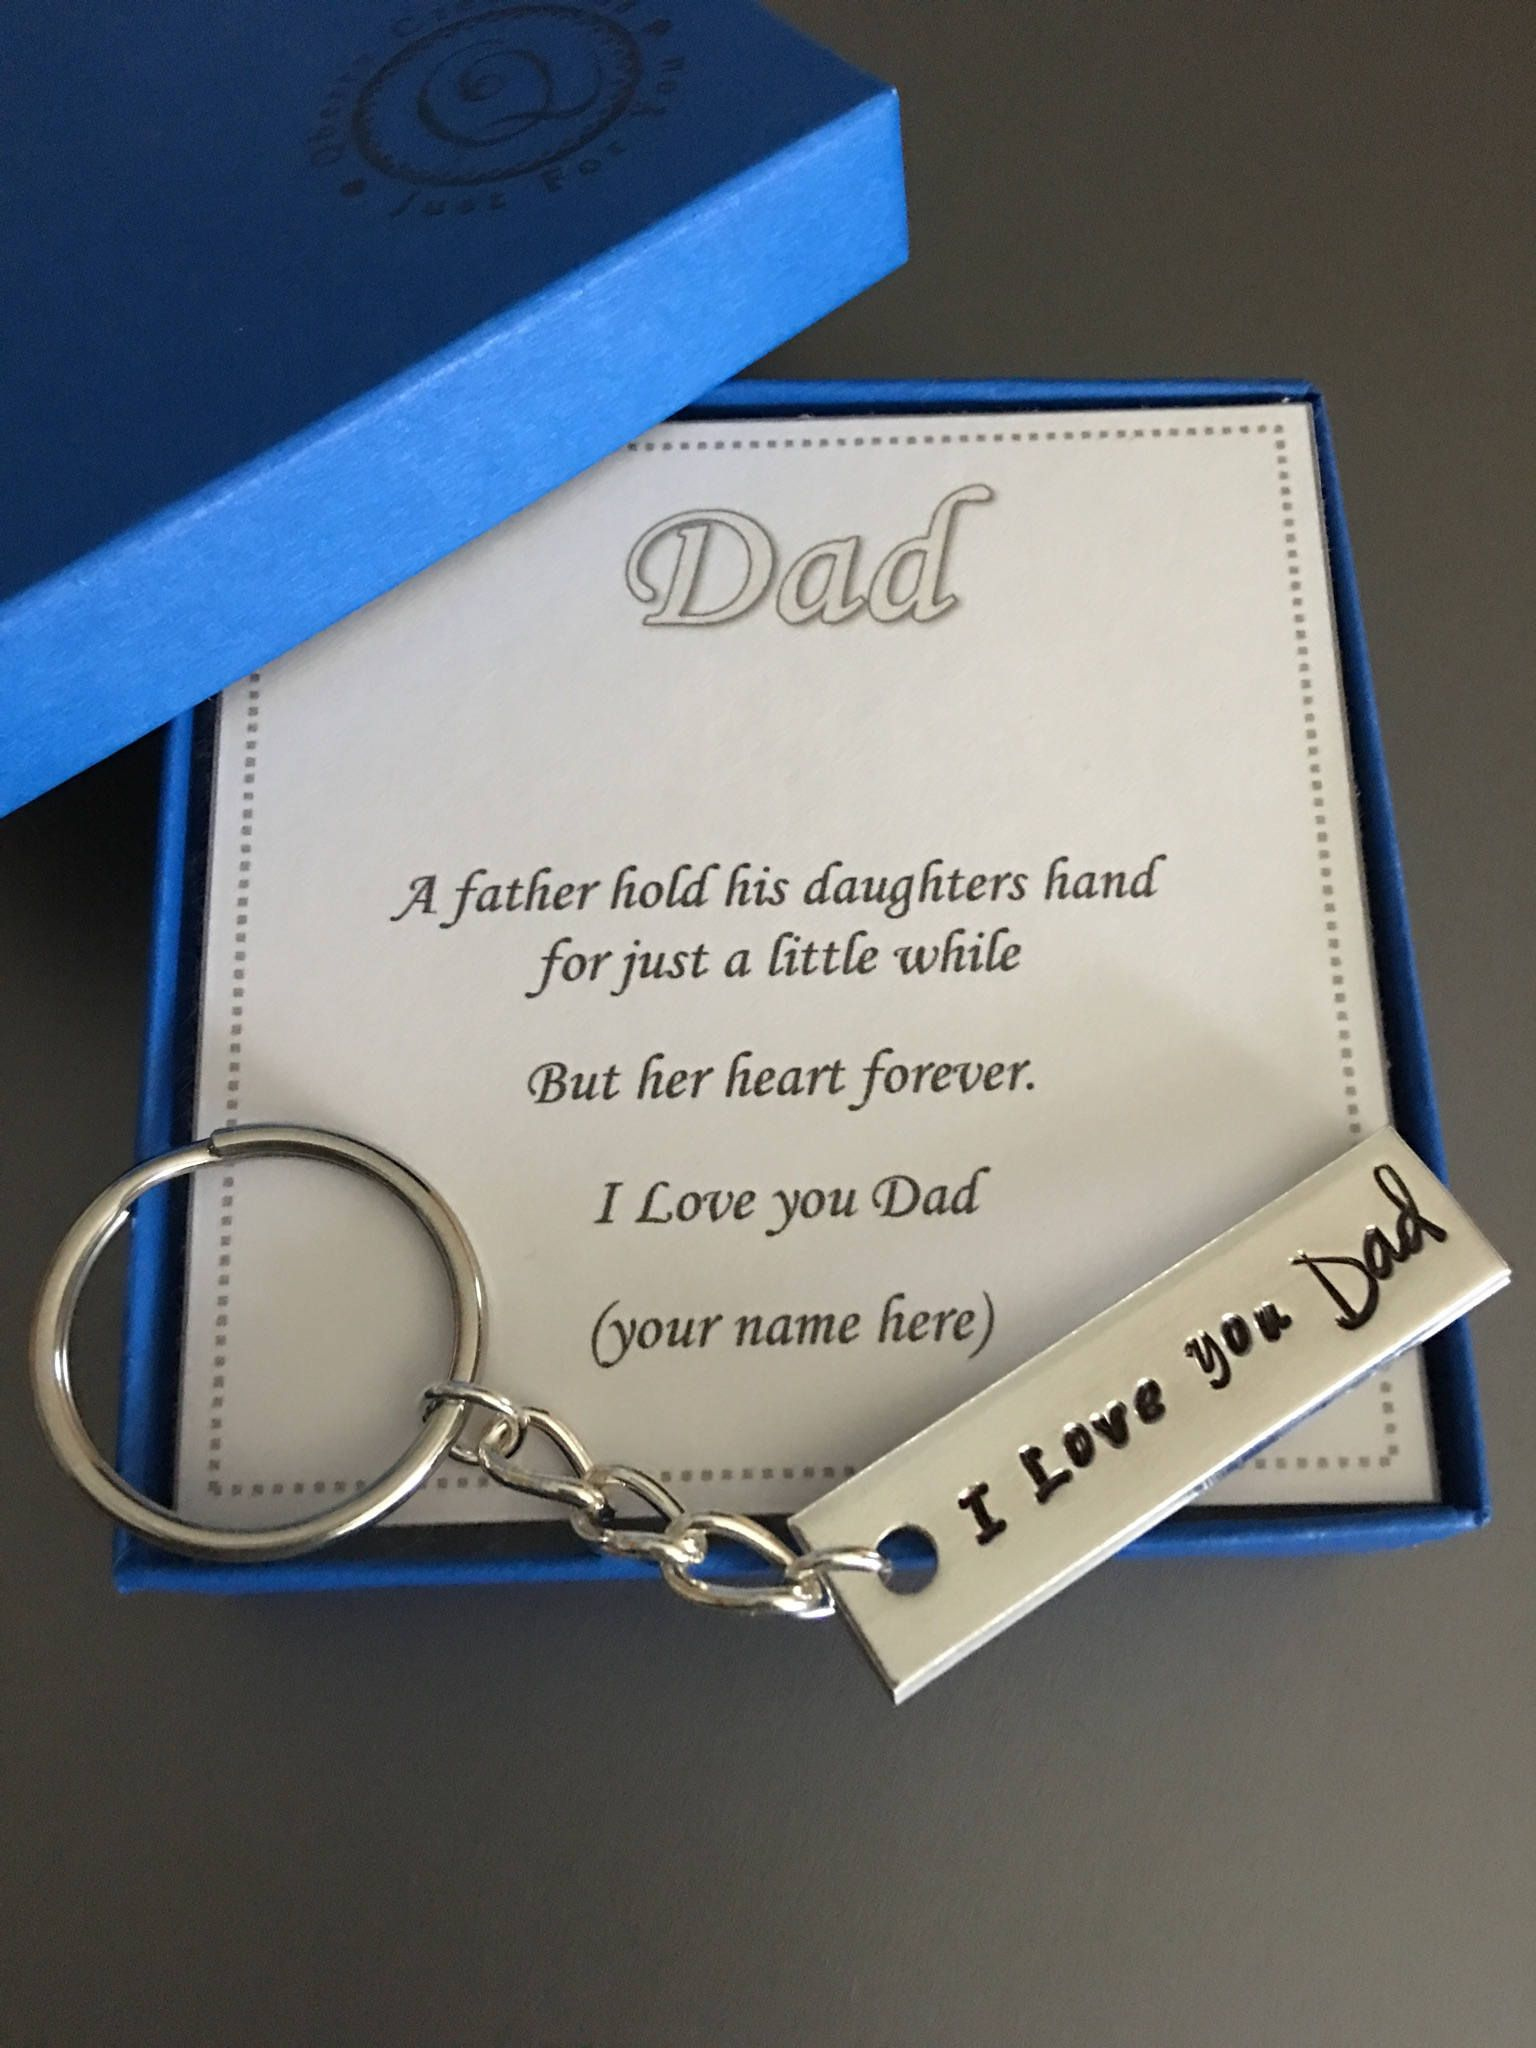 Considerable Dad Photos Styles Ideas 2018 Far Far S Day Gift Fars Groom Present Ideas Far Bride Keychain Wedding Gift Gift To Wedding Gift Groom Gifts Amazon gifts Father Of The Groom Gifts